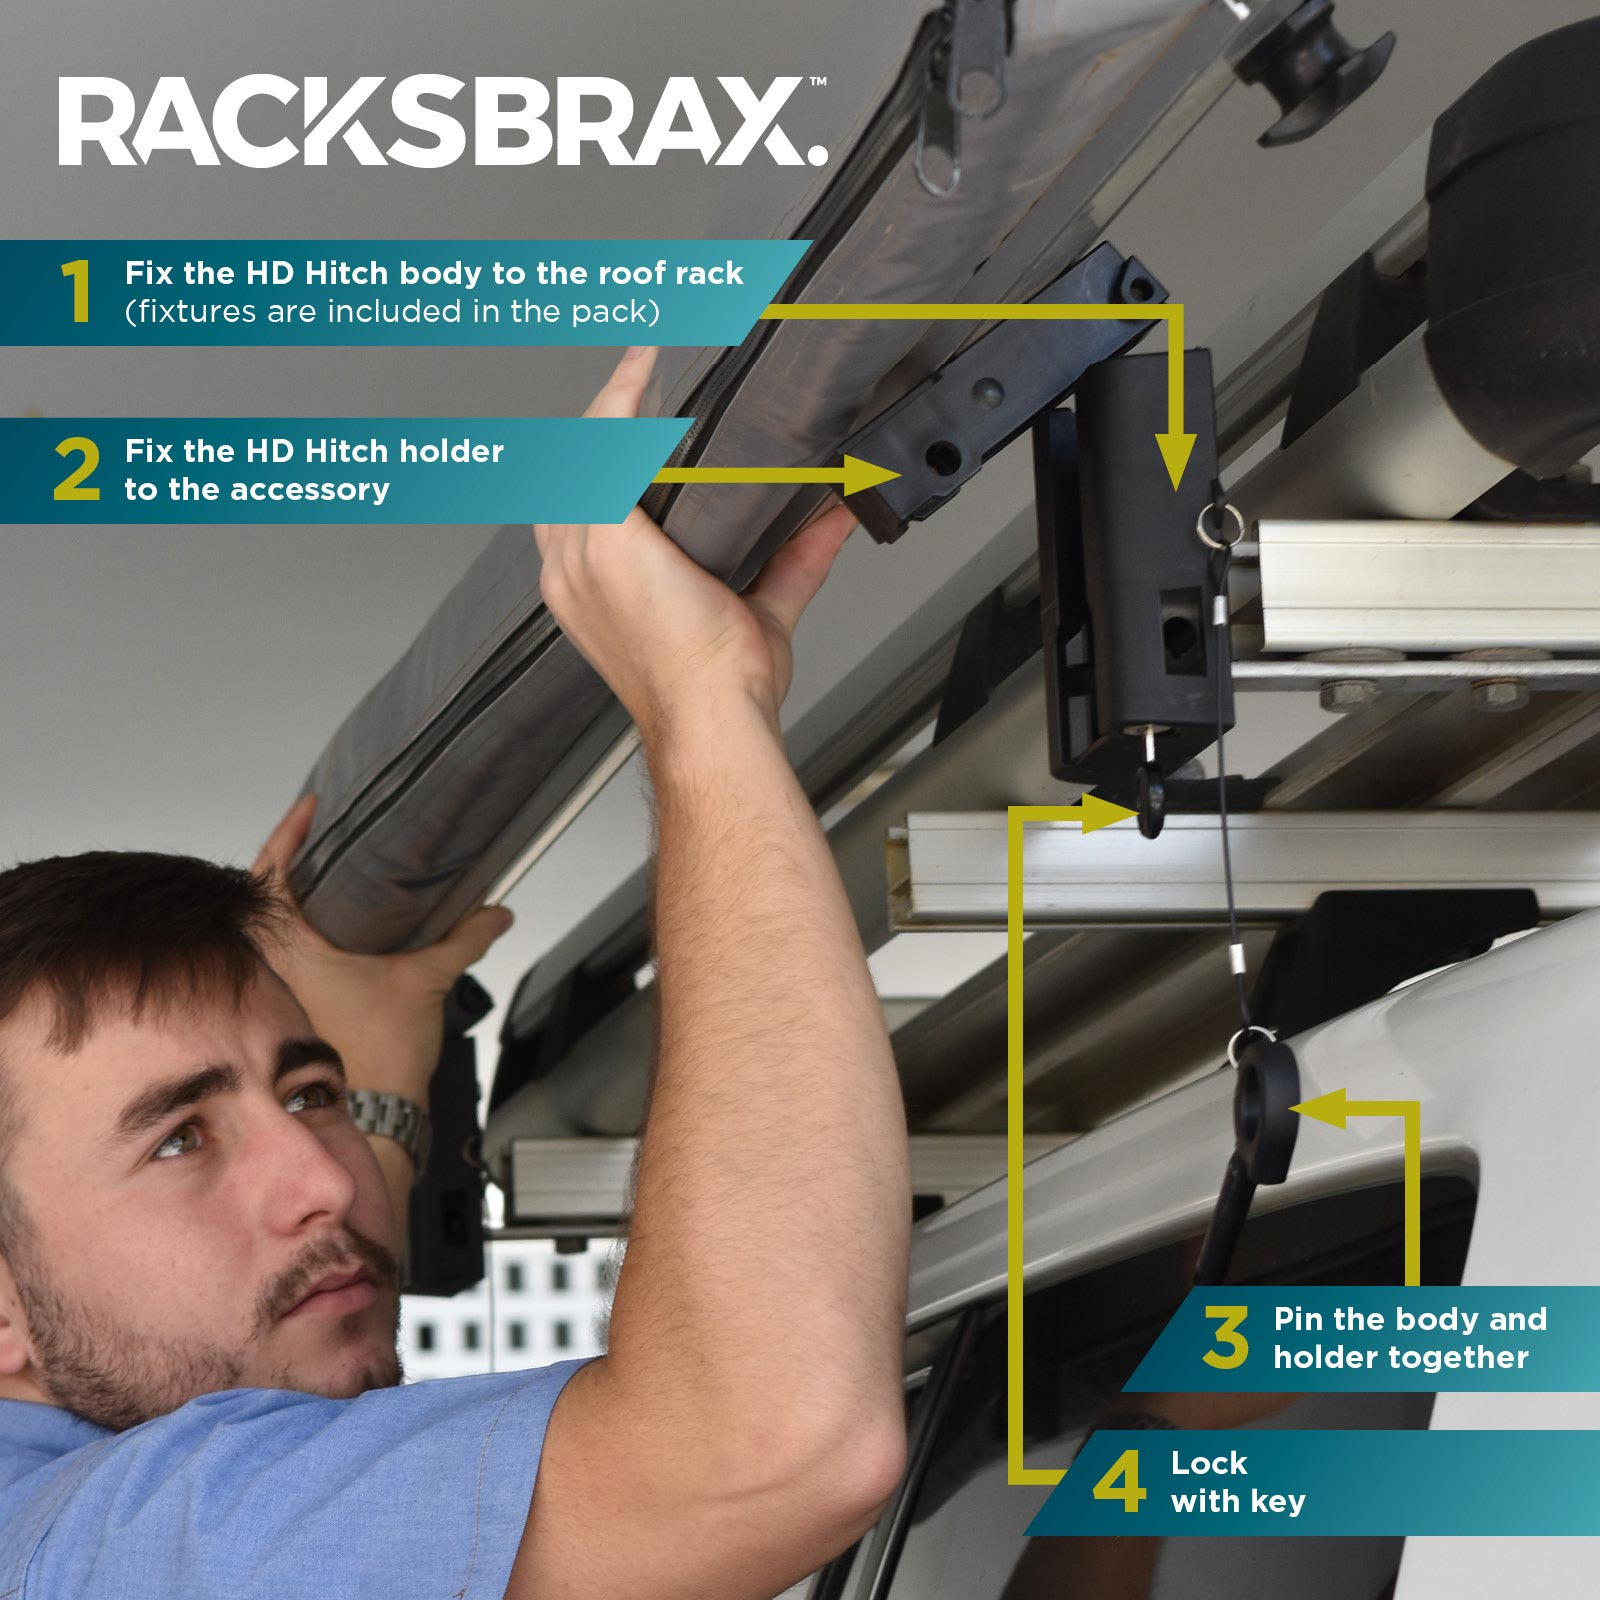 RACKSBRAX Step-by-step Diagram